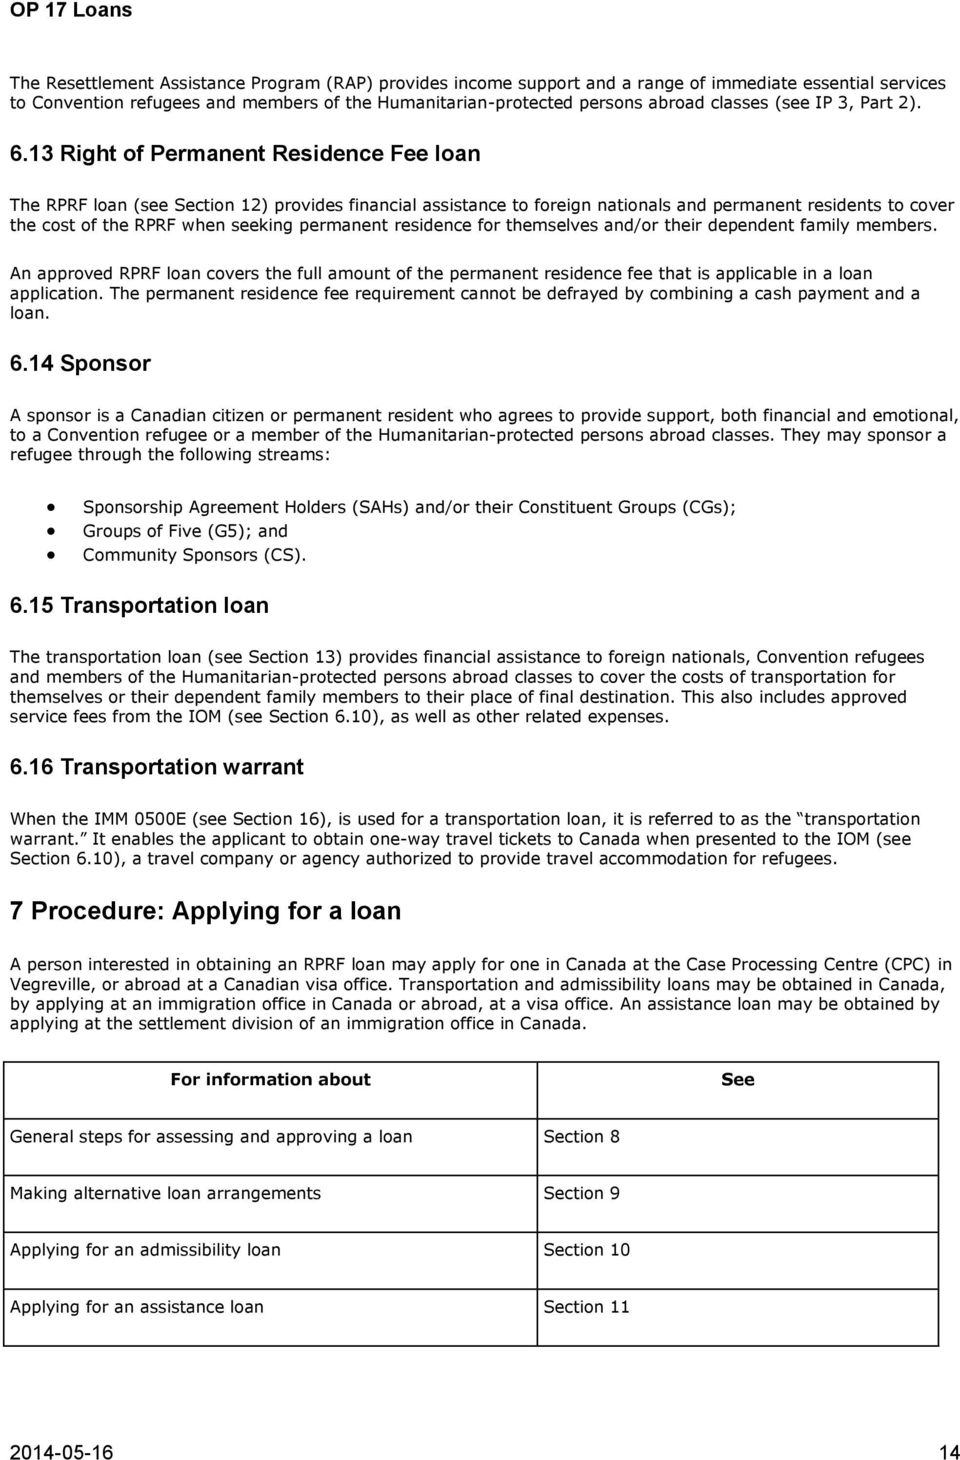 13 Right of Permanent Residence Fee loan The RPRF loan (see Section 12) provides financial assistance to foreign nationals and permanent residents to cover the cost of the RPRF when seeking permanent